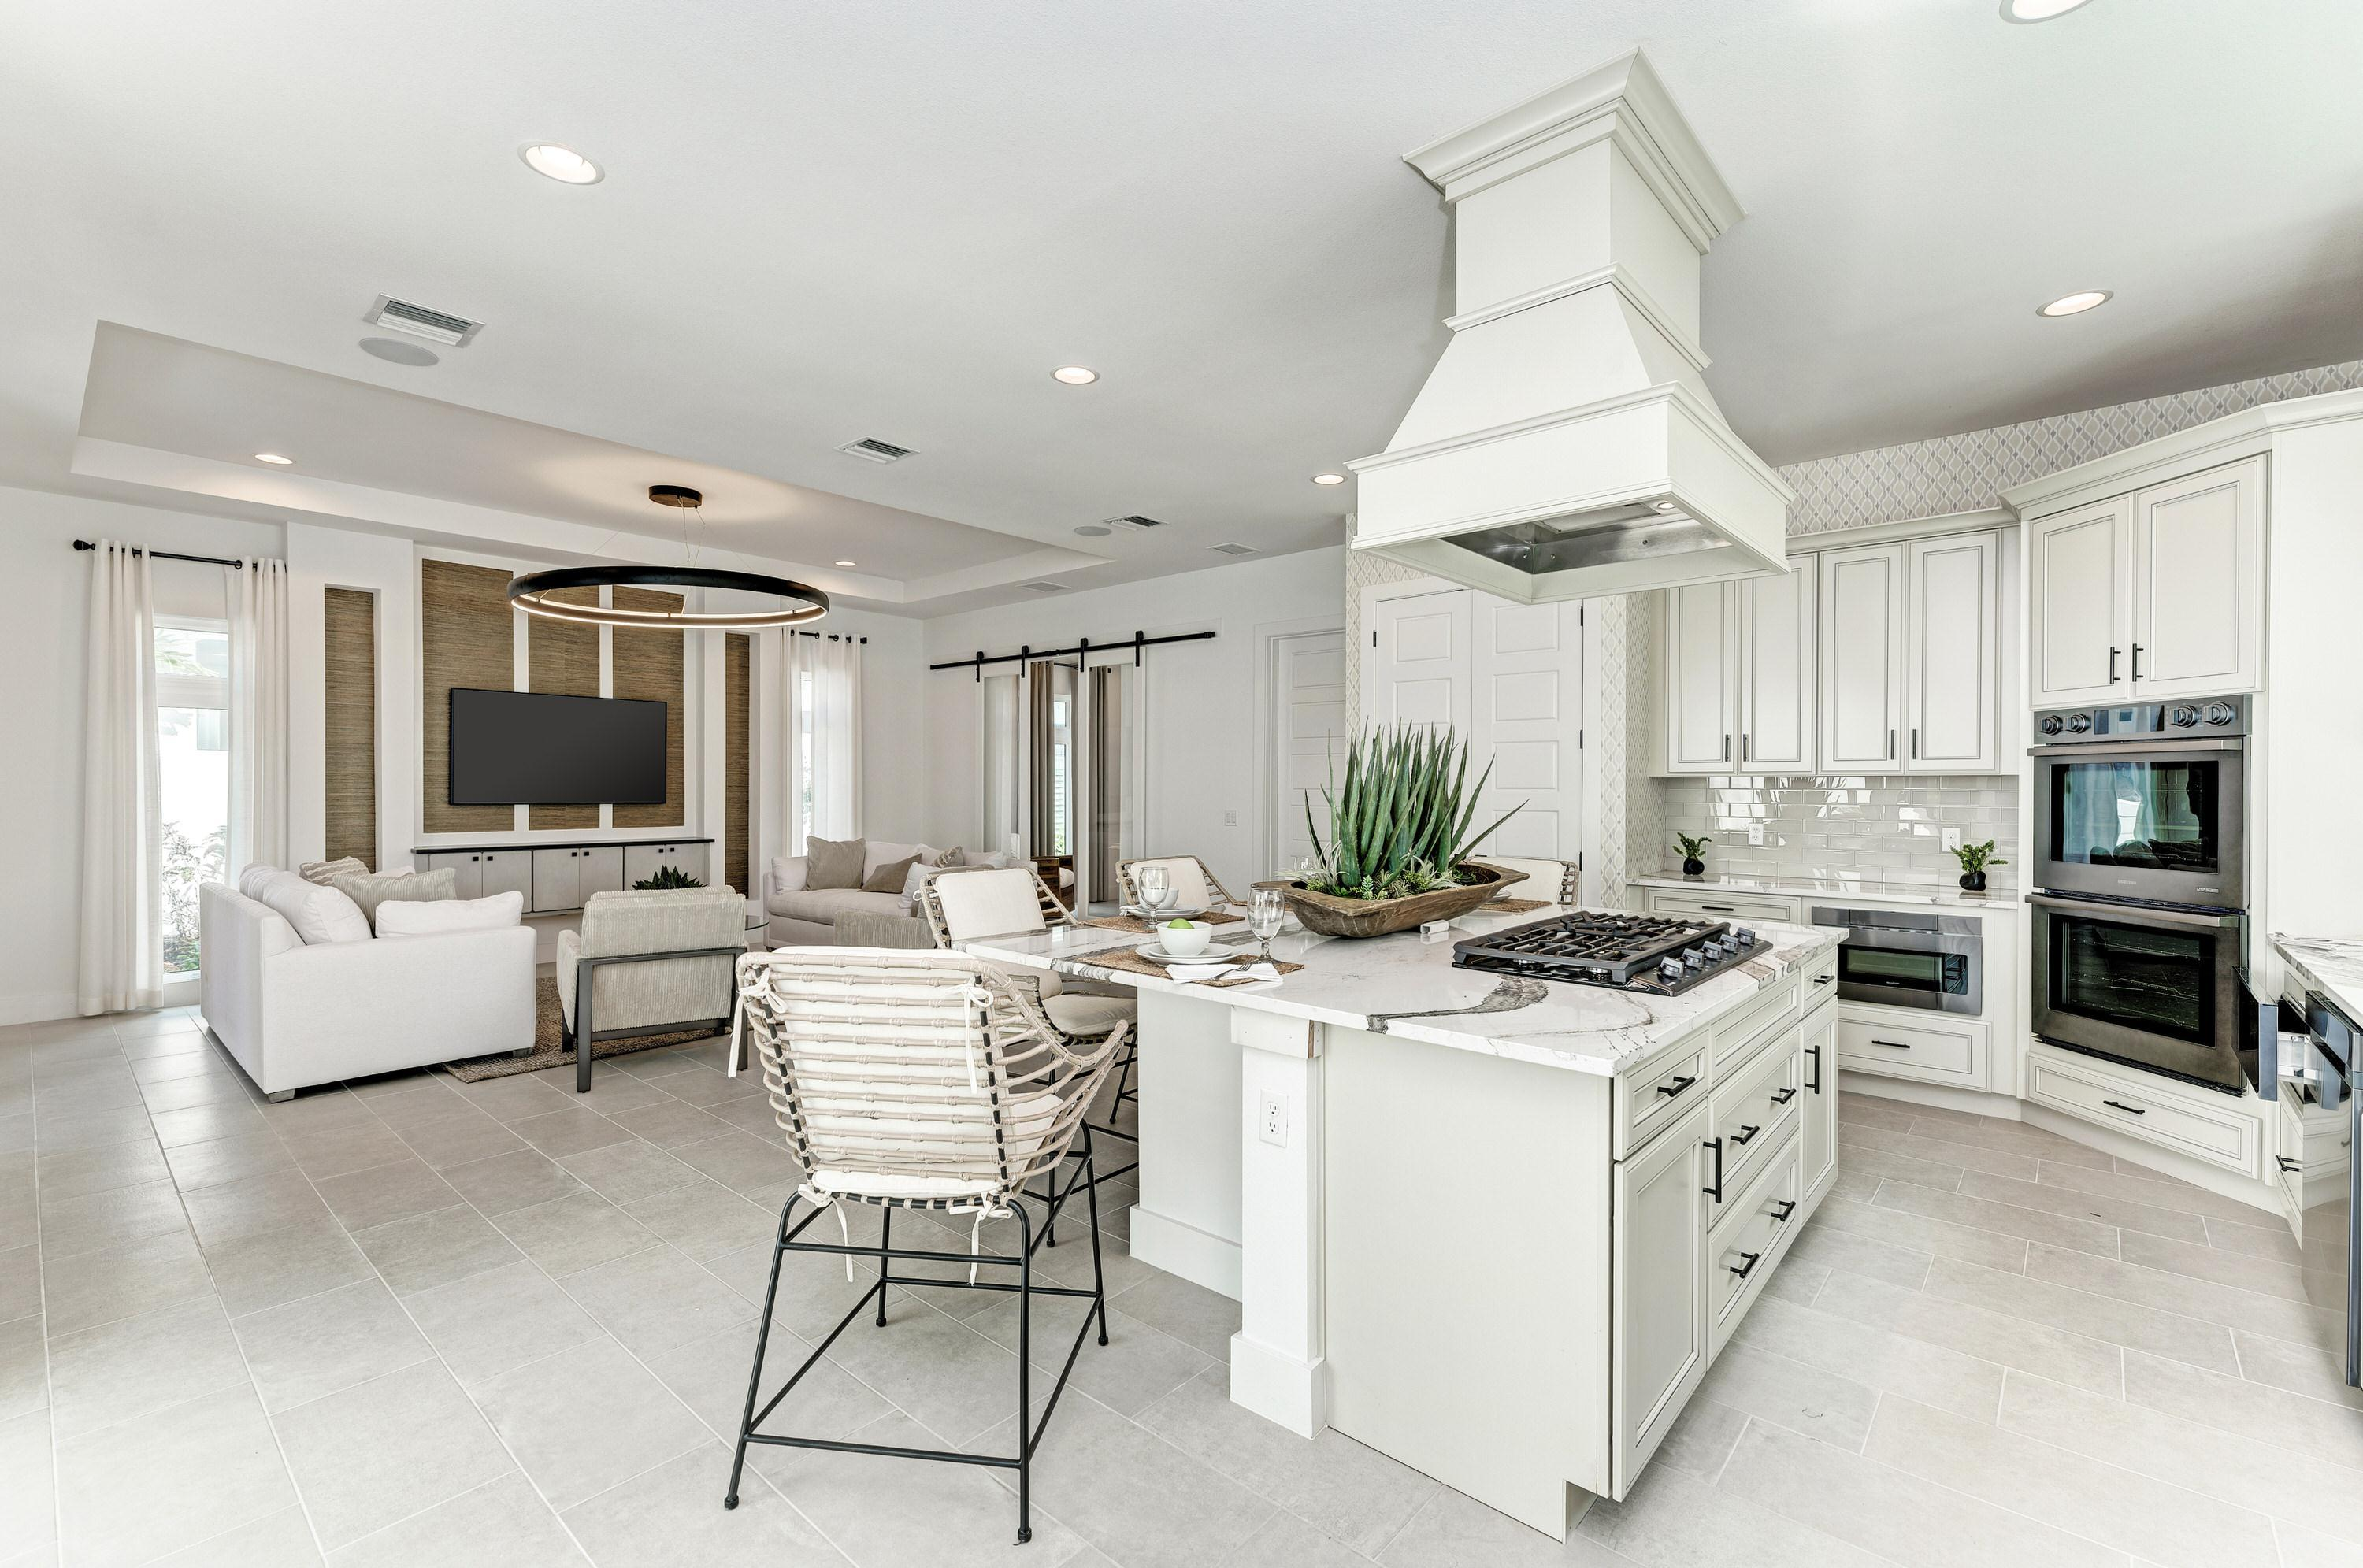 Living Area featured in the Salt Meadow By Medallion Home in Sarasota-Bradenton, FL